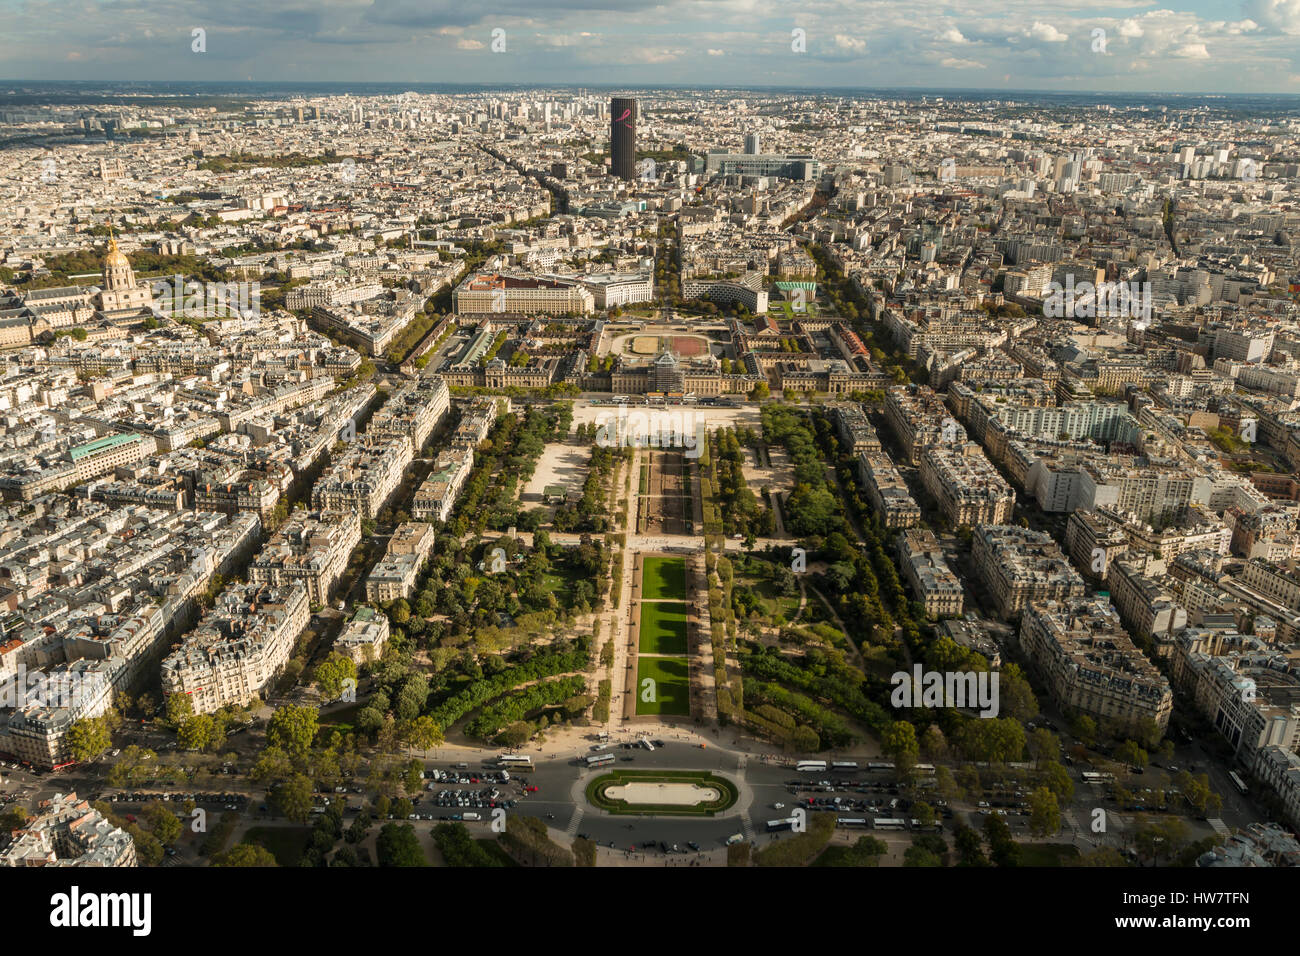 PARIS, FRANCE- OCTOBER 2, 2016: View over Paris from the top of the Eiffel Tower. Stock Photo